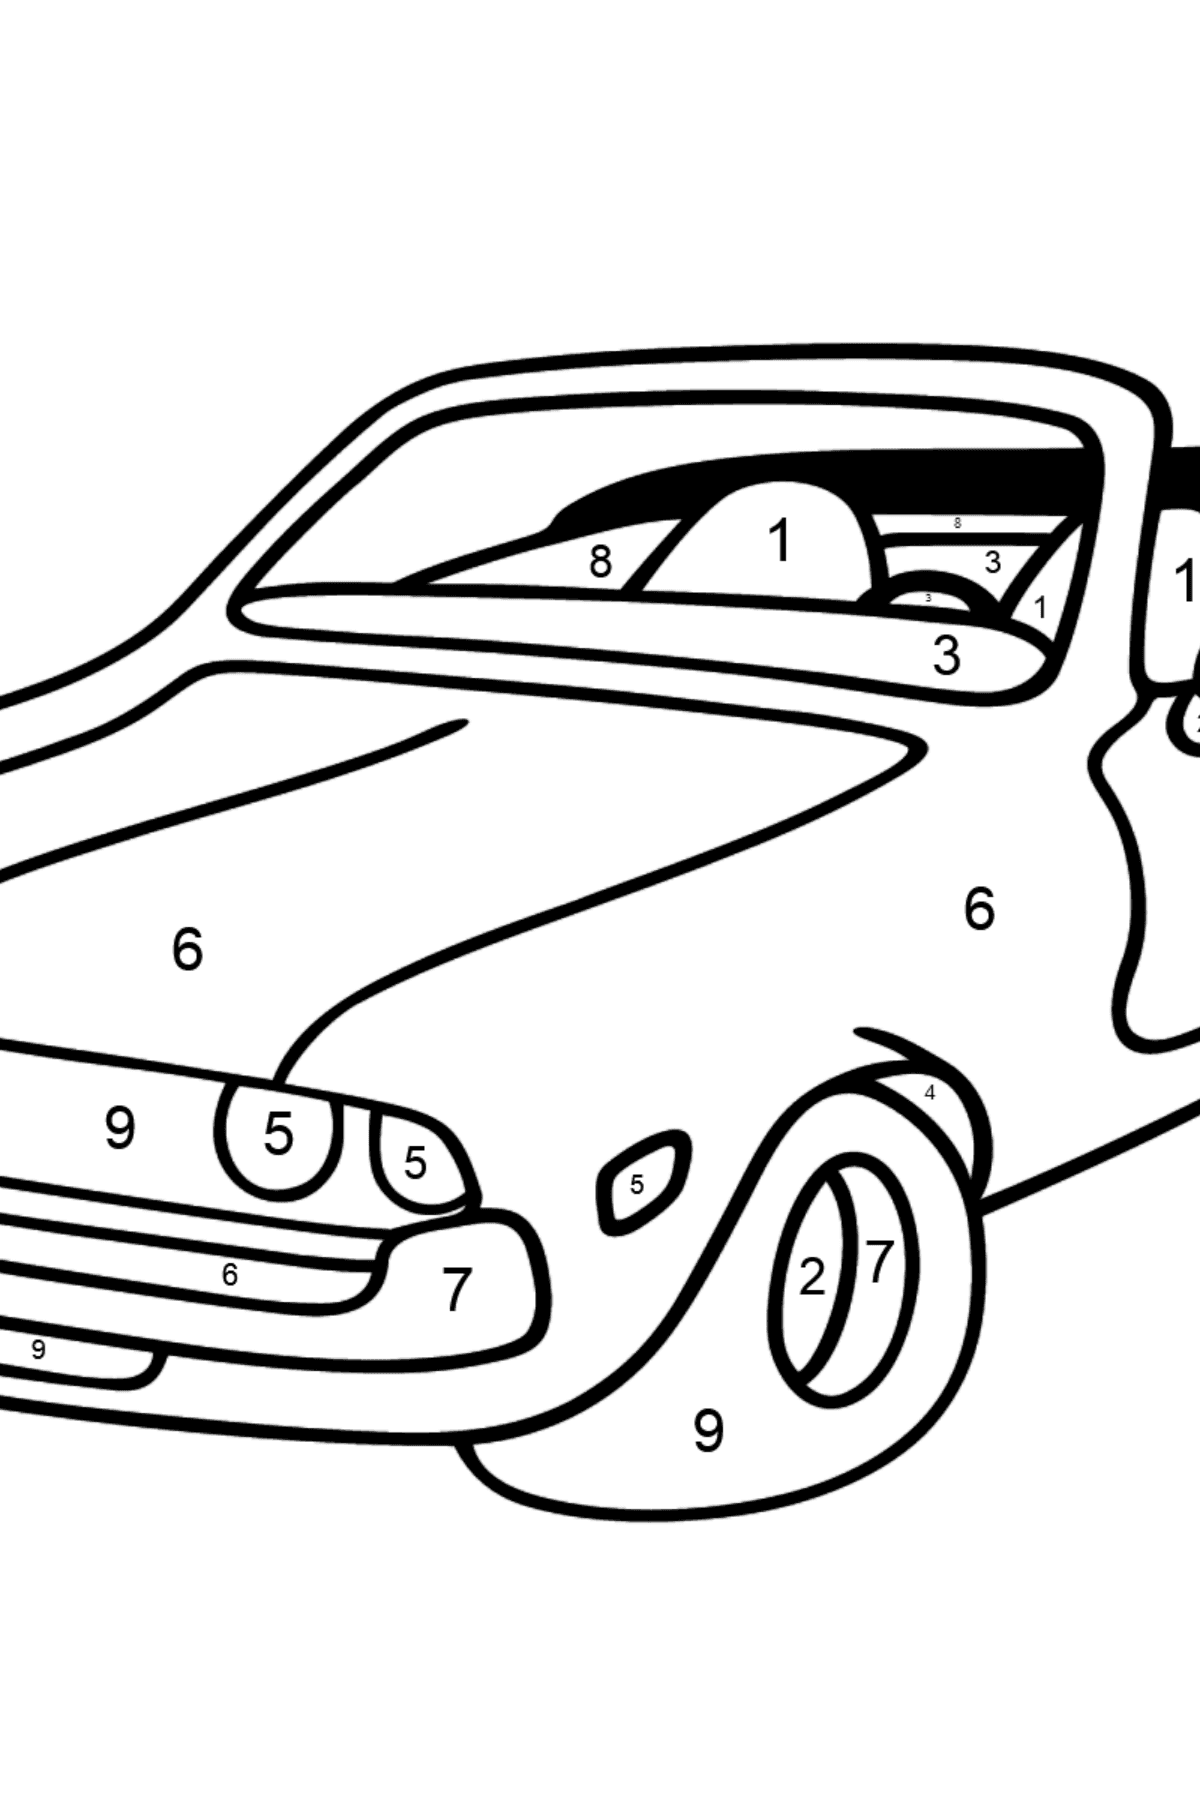 Open Top Cars coloring page - Coloring by Numbers for Kids